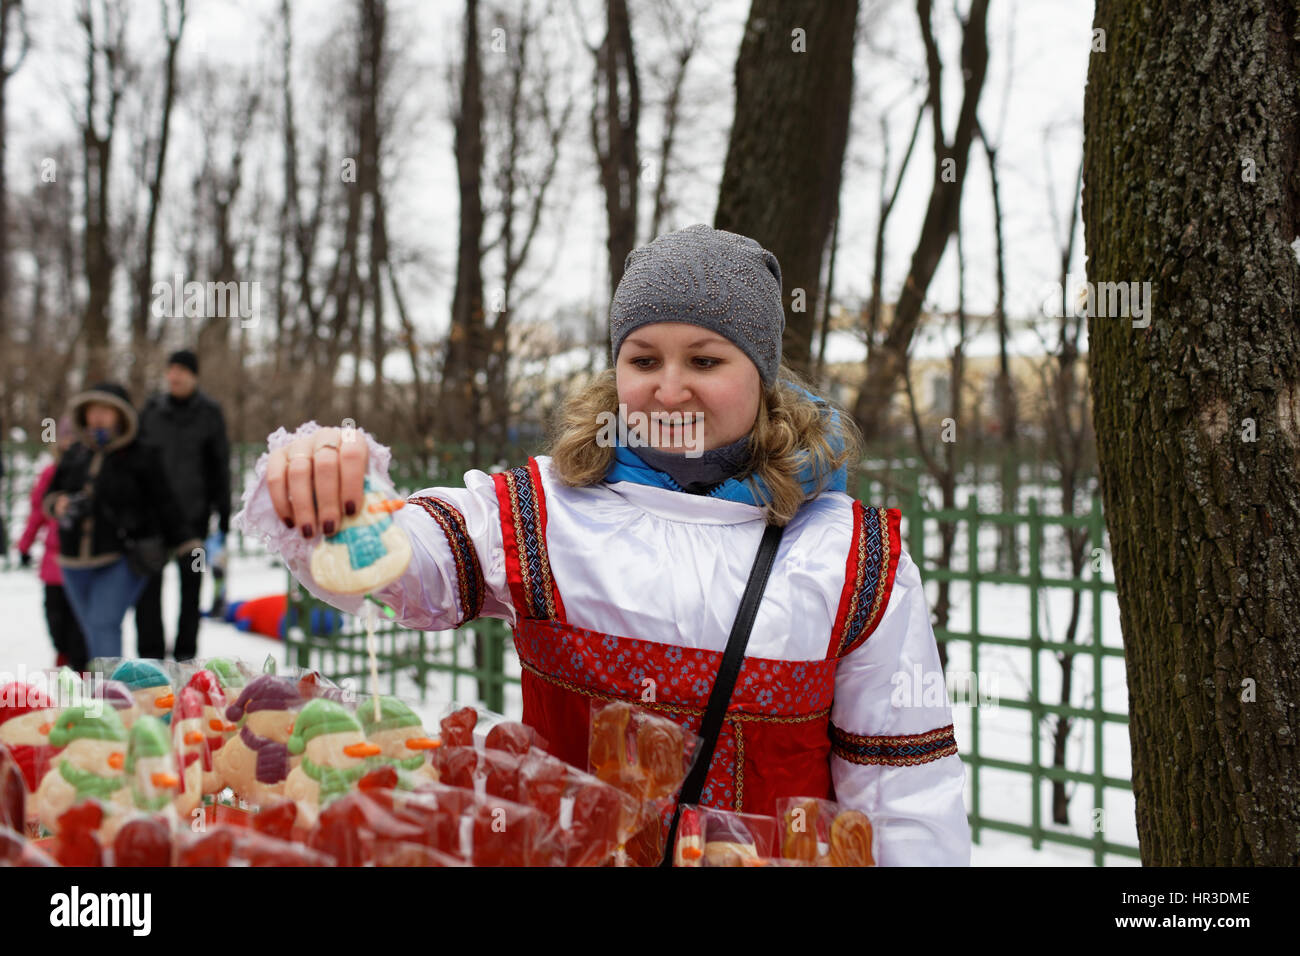 St. Petersburg, Russia, 26th February, 2017. Woman selling sweets on stick during Shrovetide celebrations in the Stock Photo